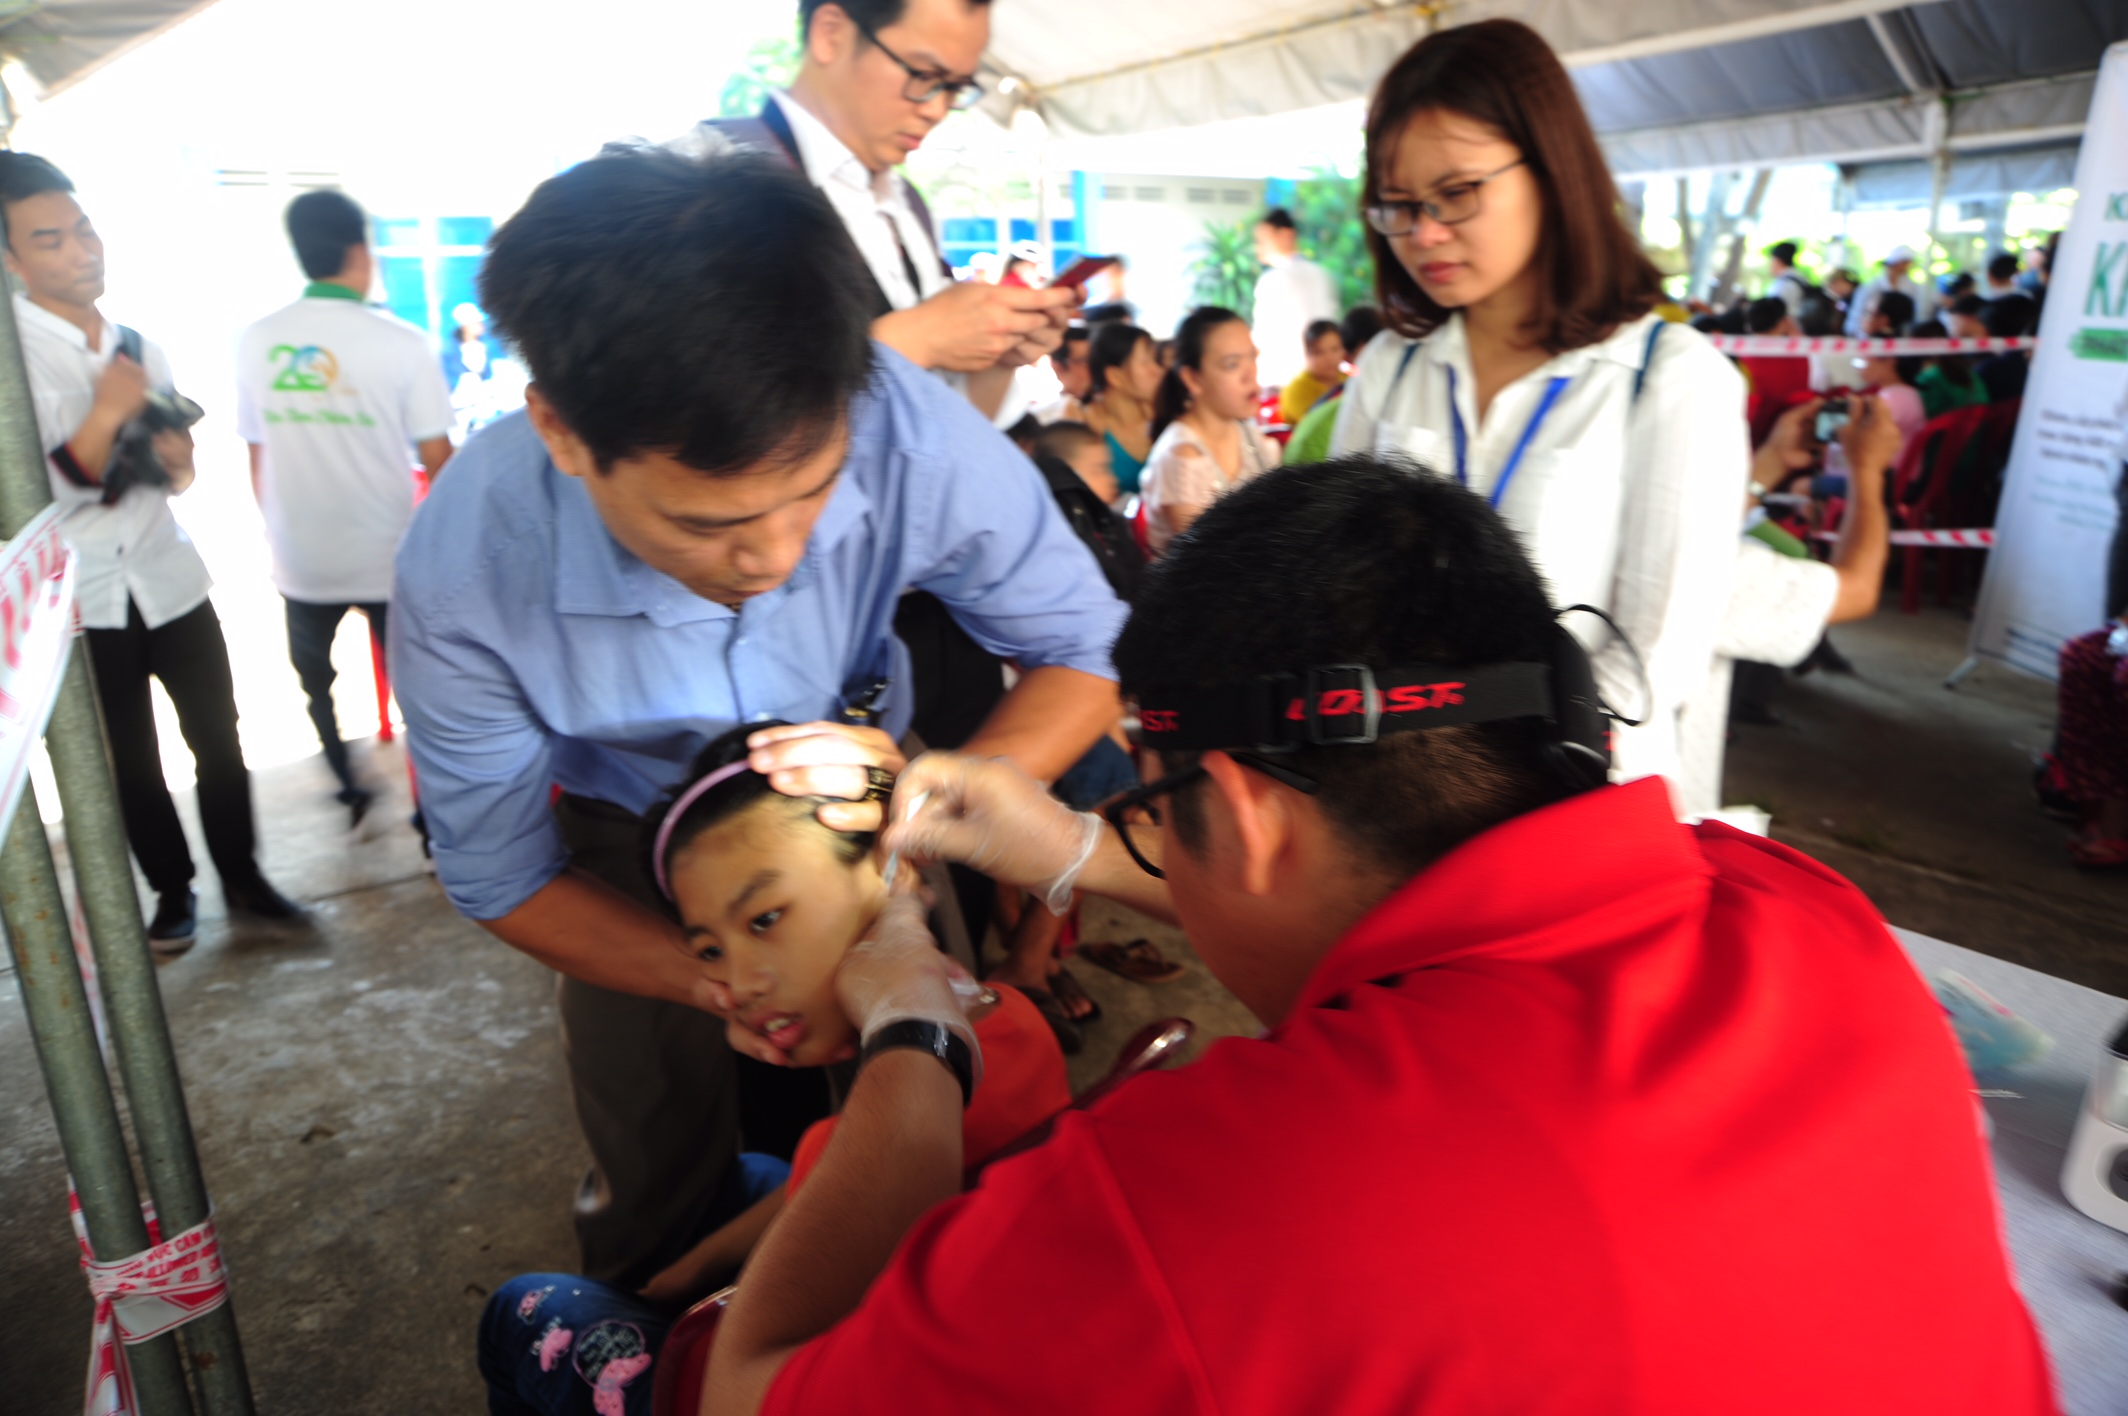 Da Nang city: VND10 billion to support hearing-impaired people